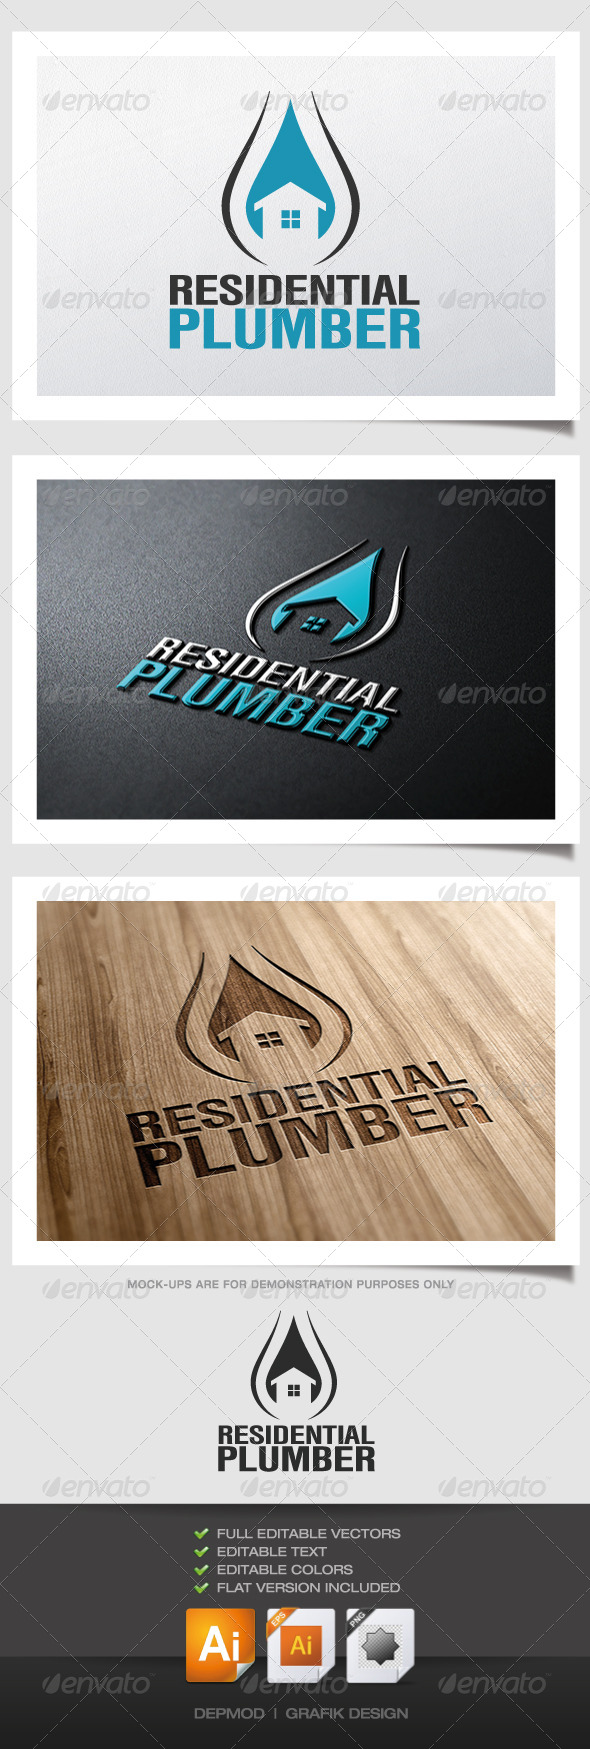 GraphicRiver Residential Plumber Logo 4520854